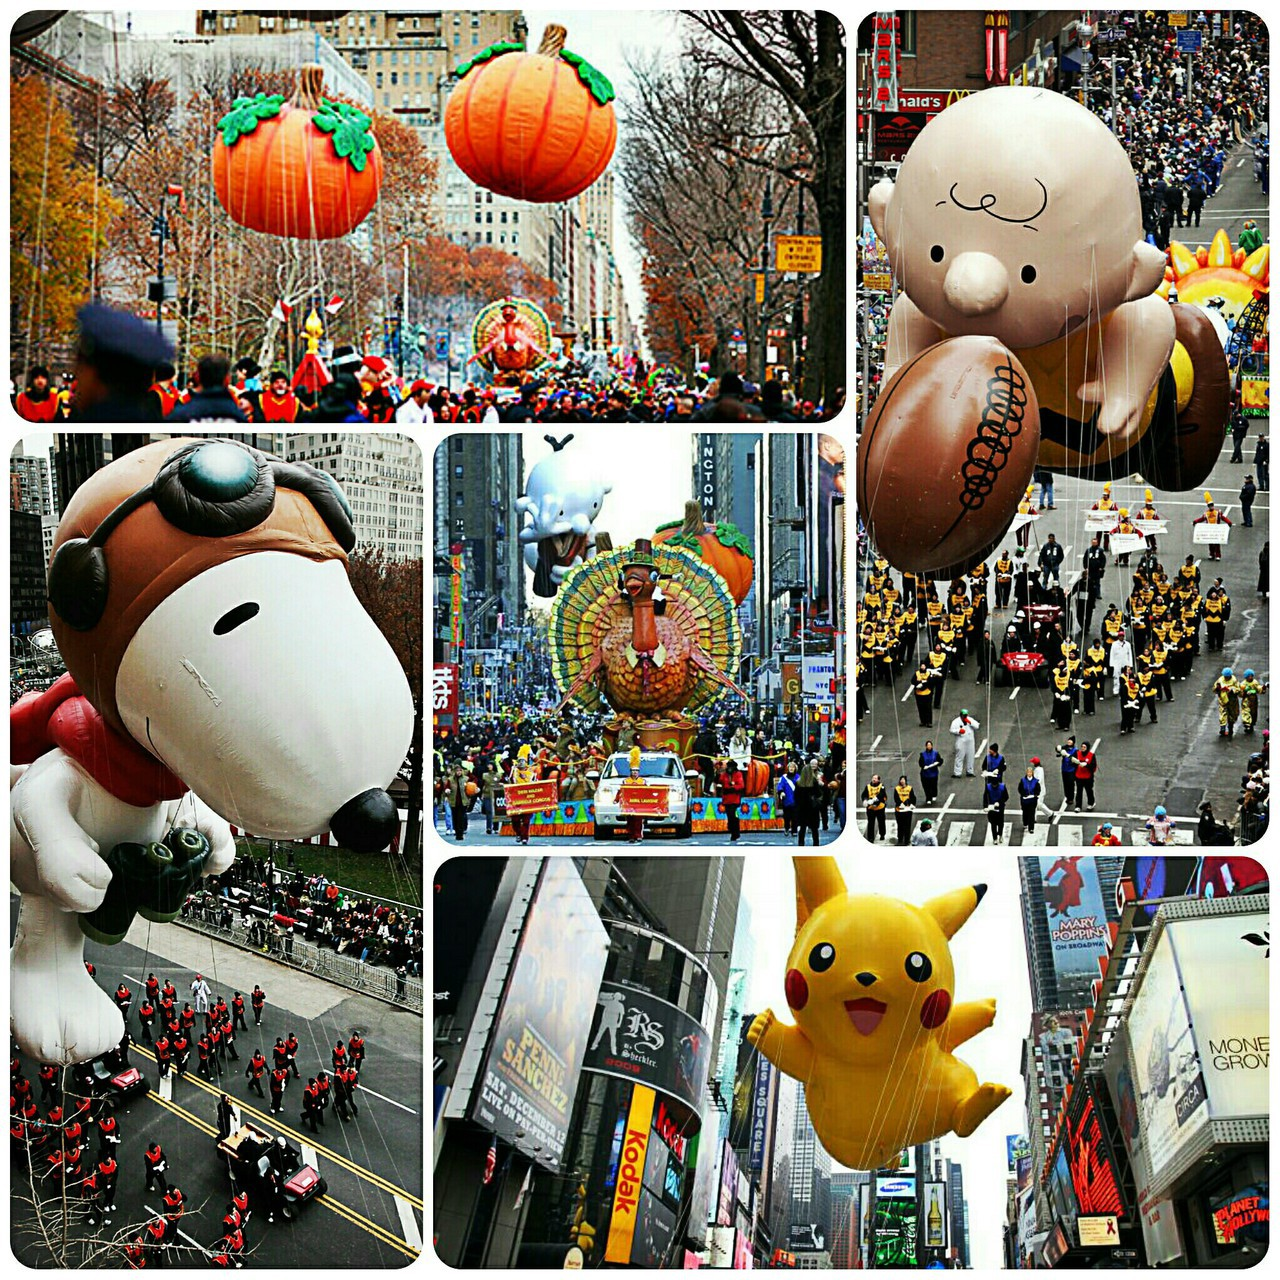 charlie brown, festive, and parade image